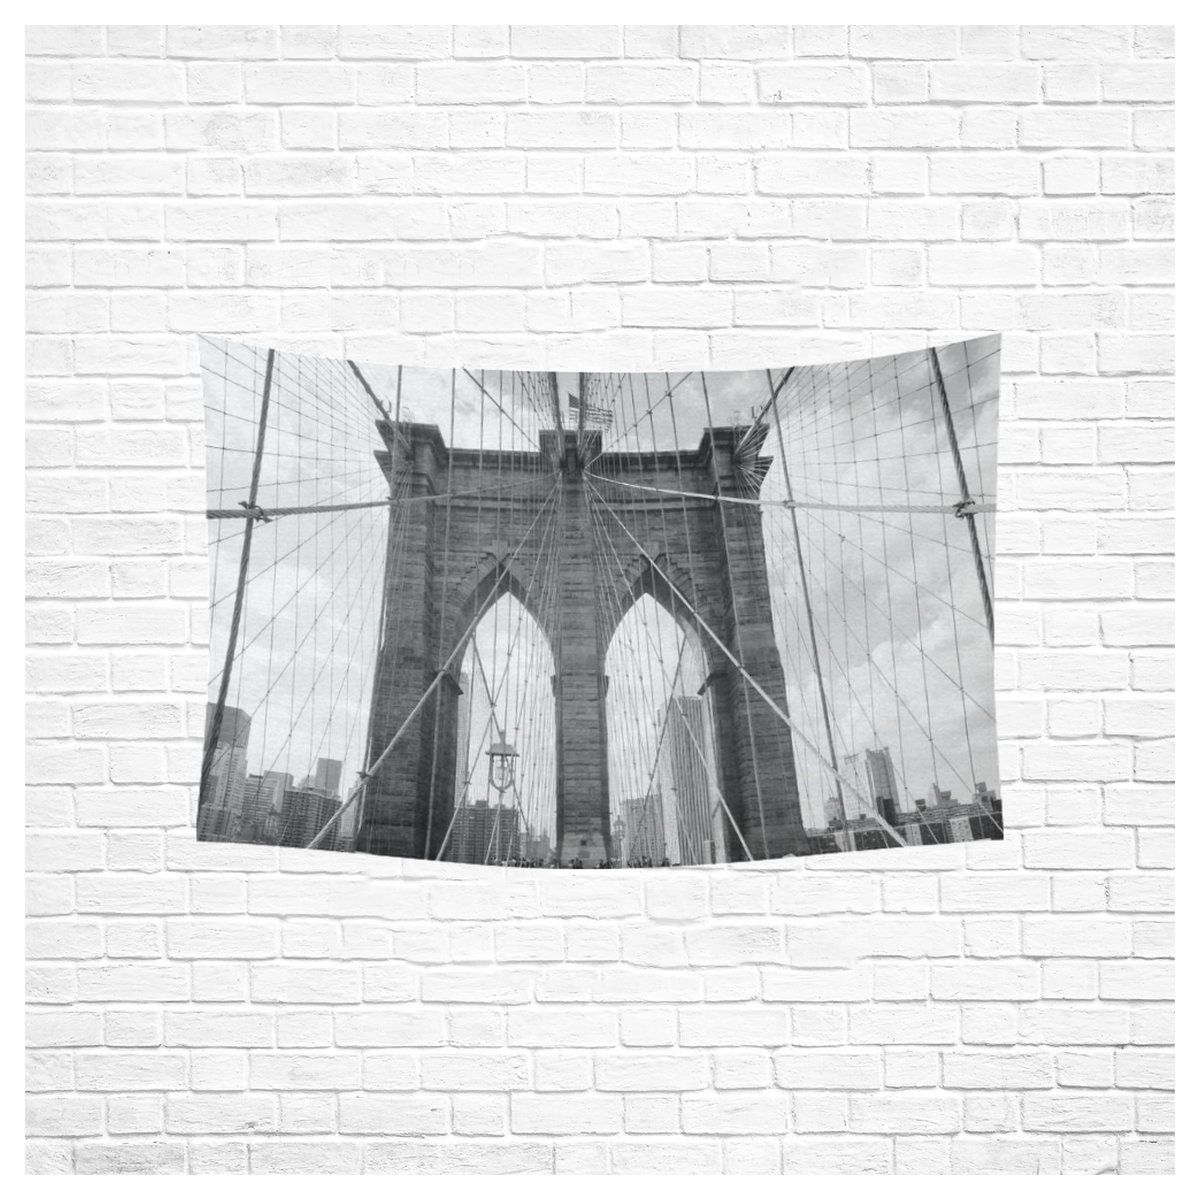 Interestprint New York City Wall Art Home Decor Brooklyn Bridge Black And White Tapestry Wall Hanging Art Sets 60 X 40 Inches Want Add Tapestries Tapes